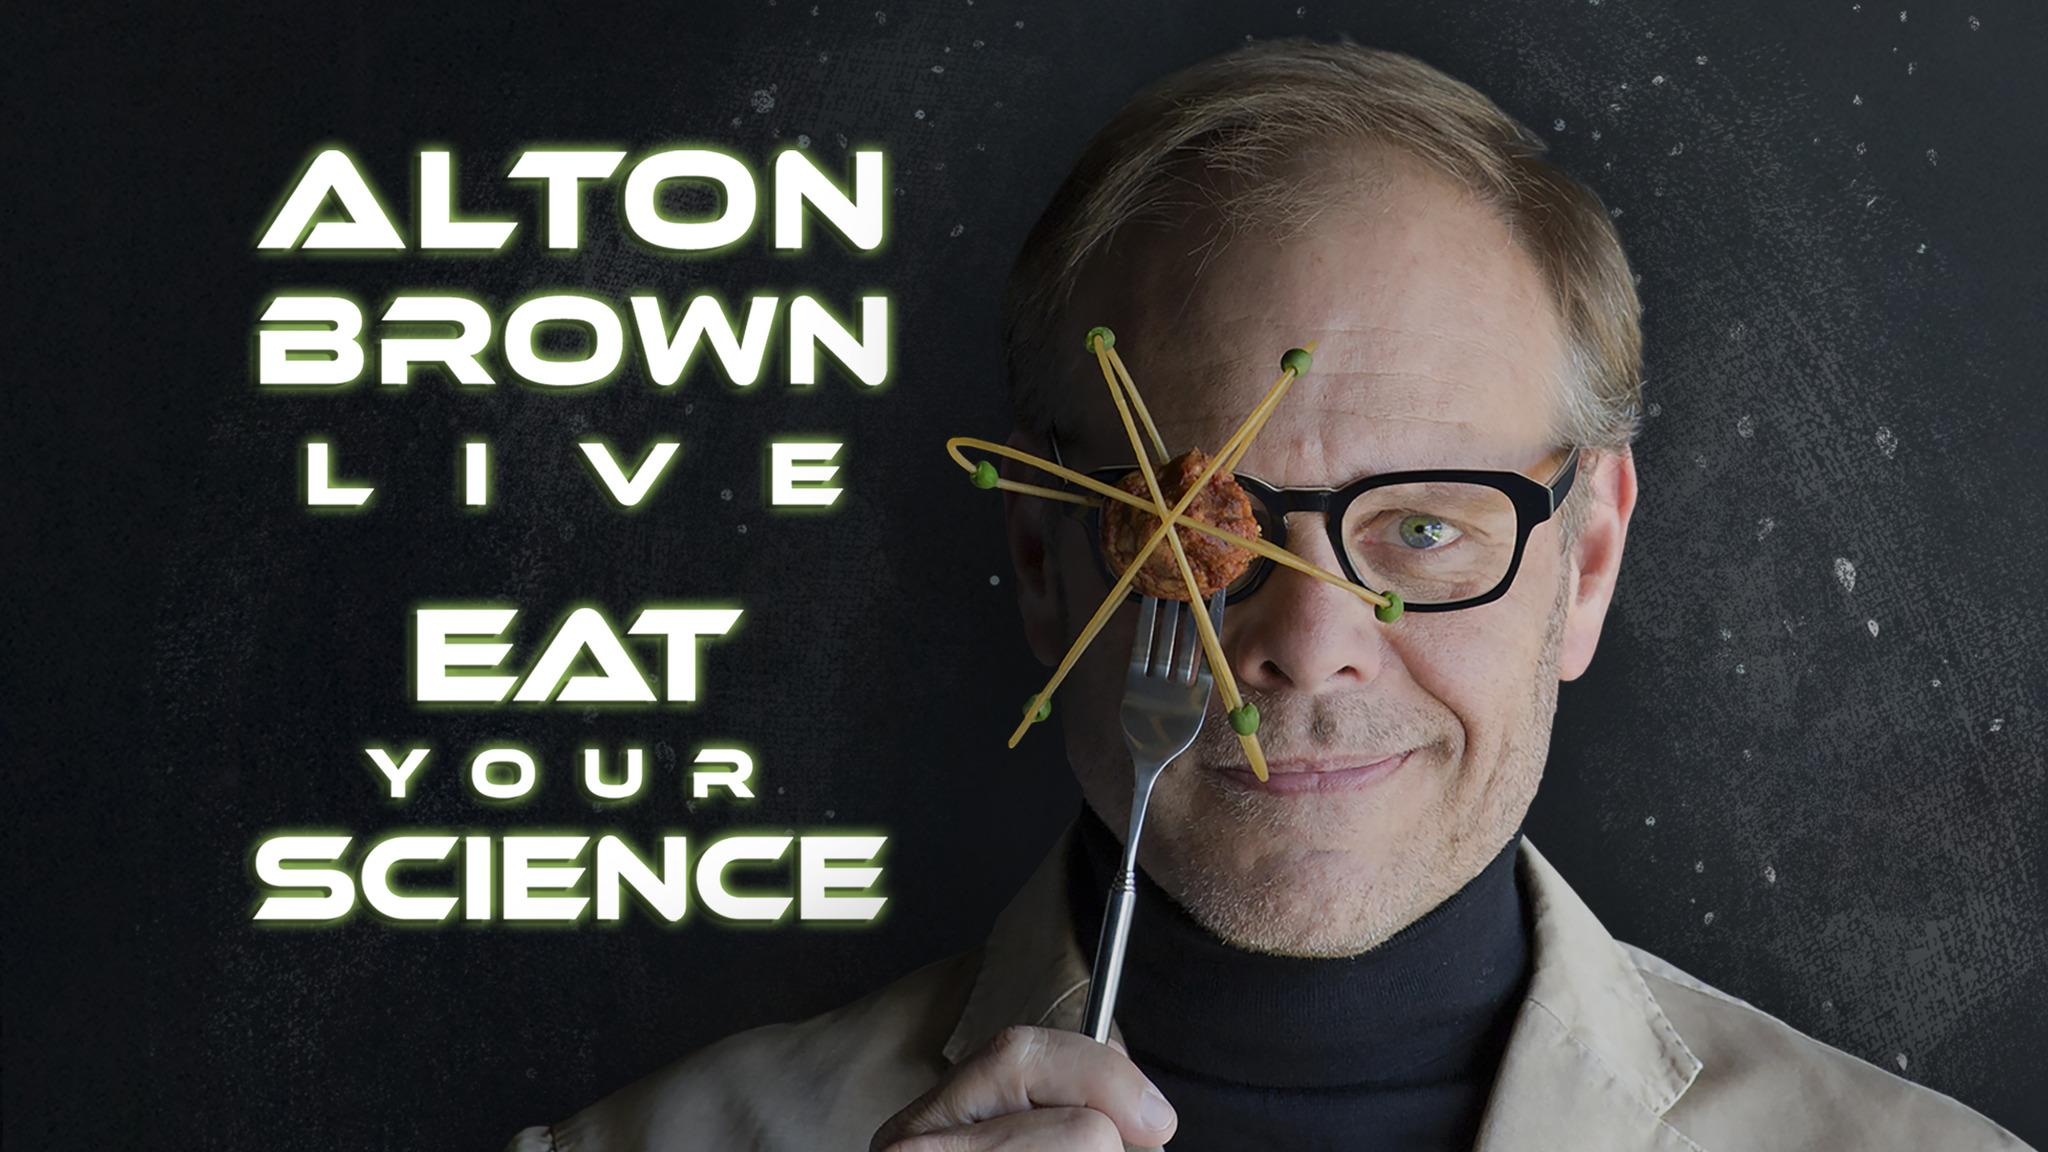 Alton Brown Live at Robinson Performance Hall